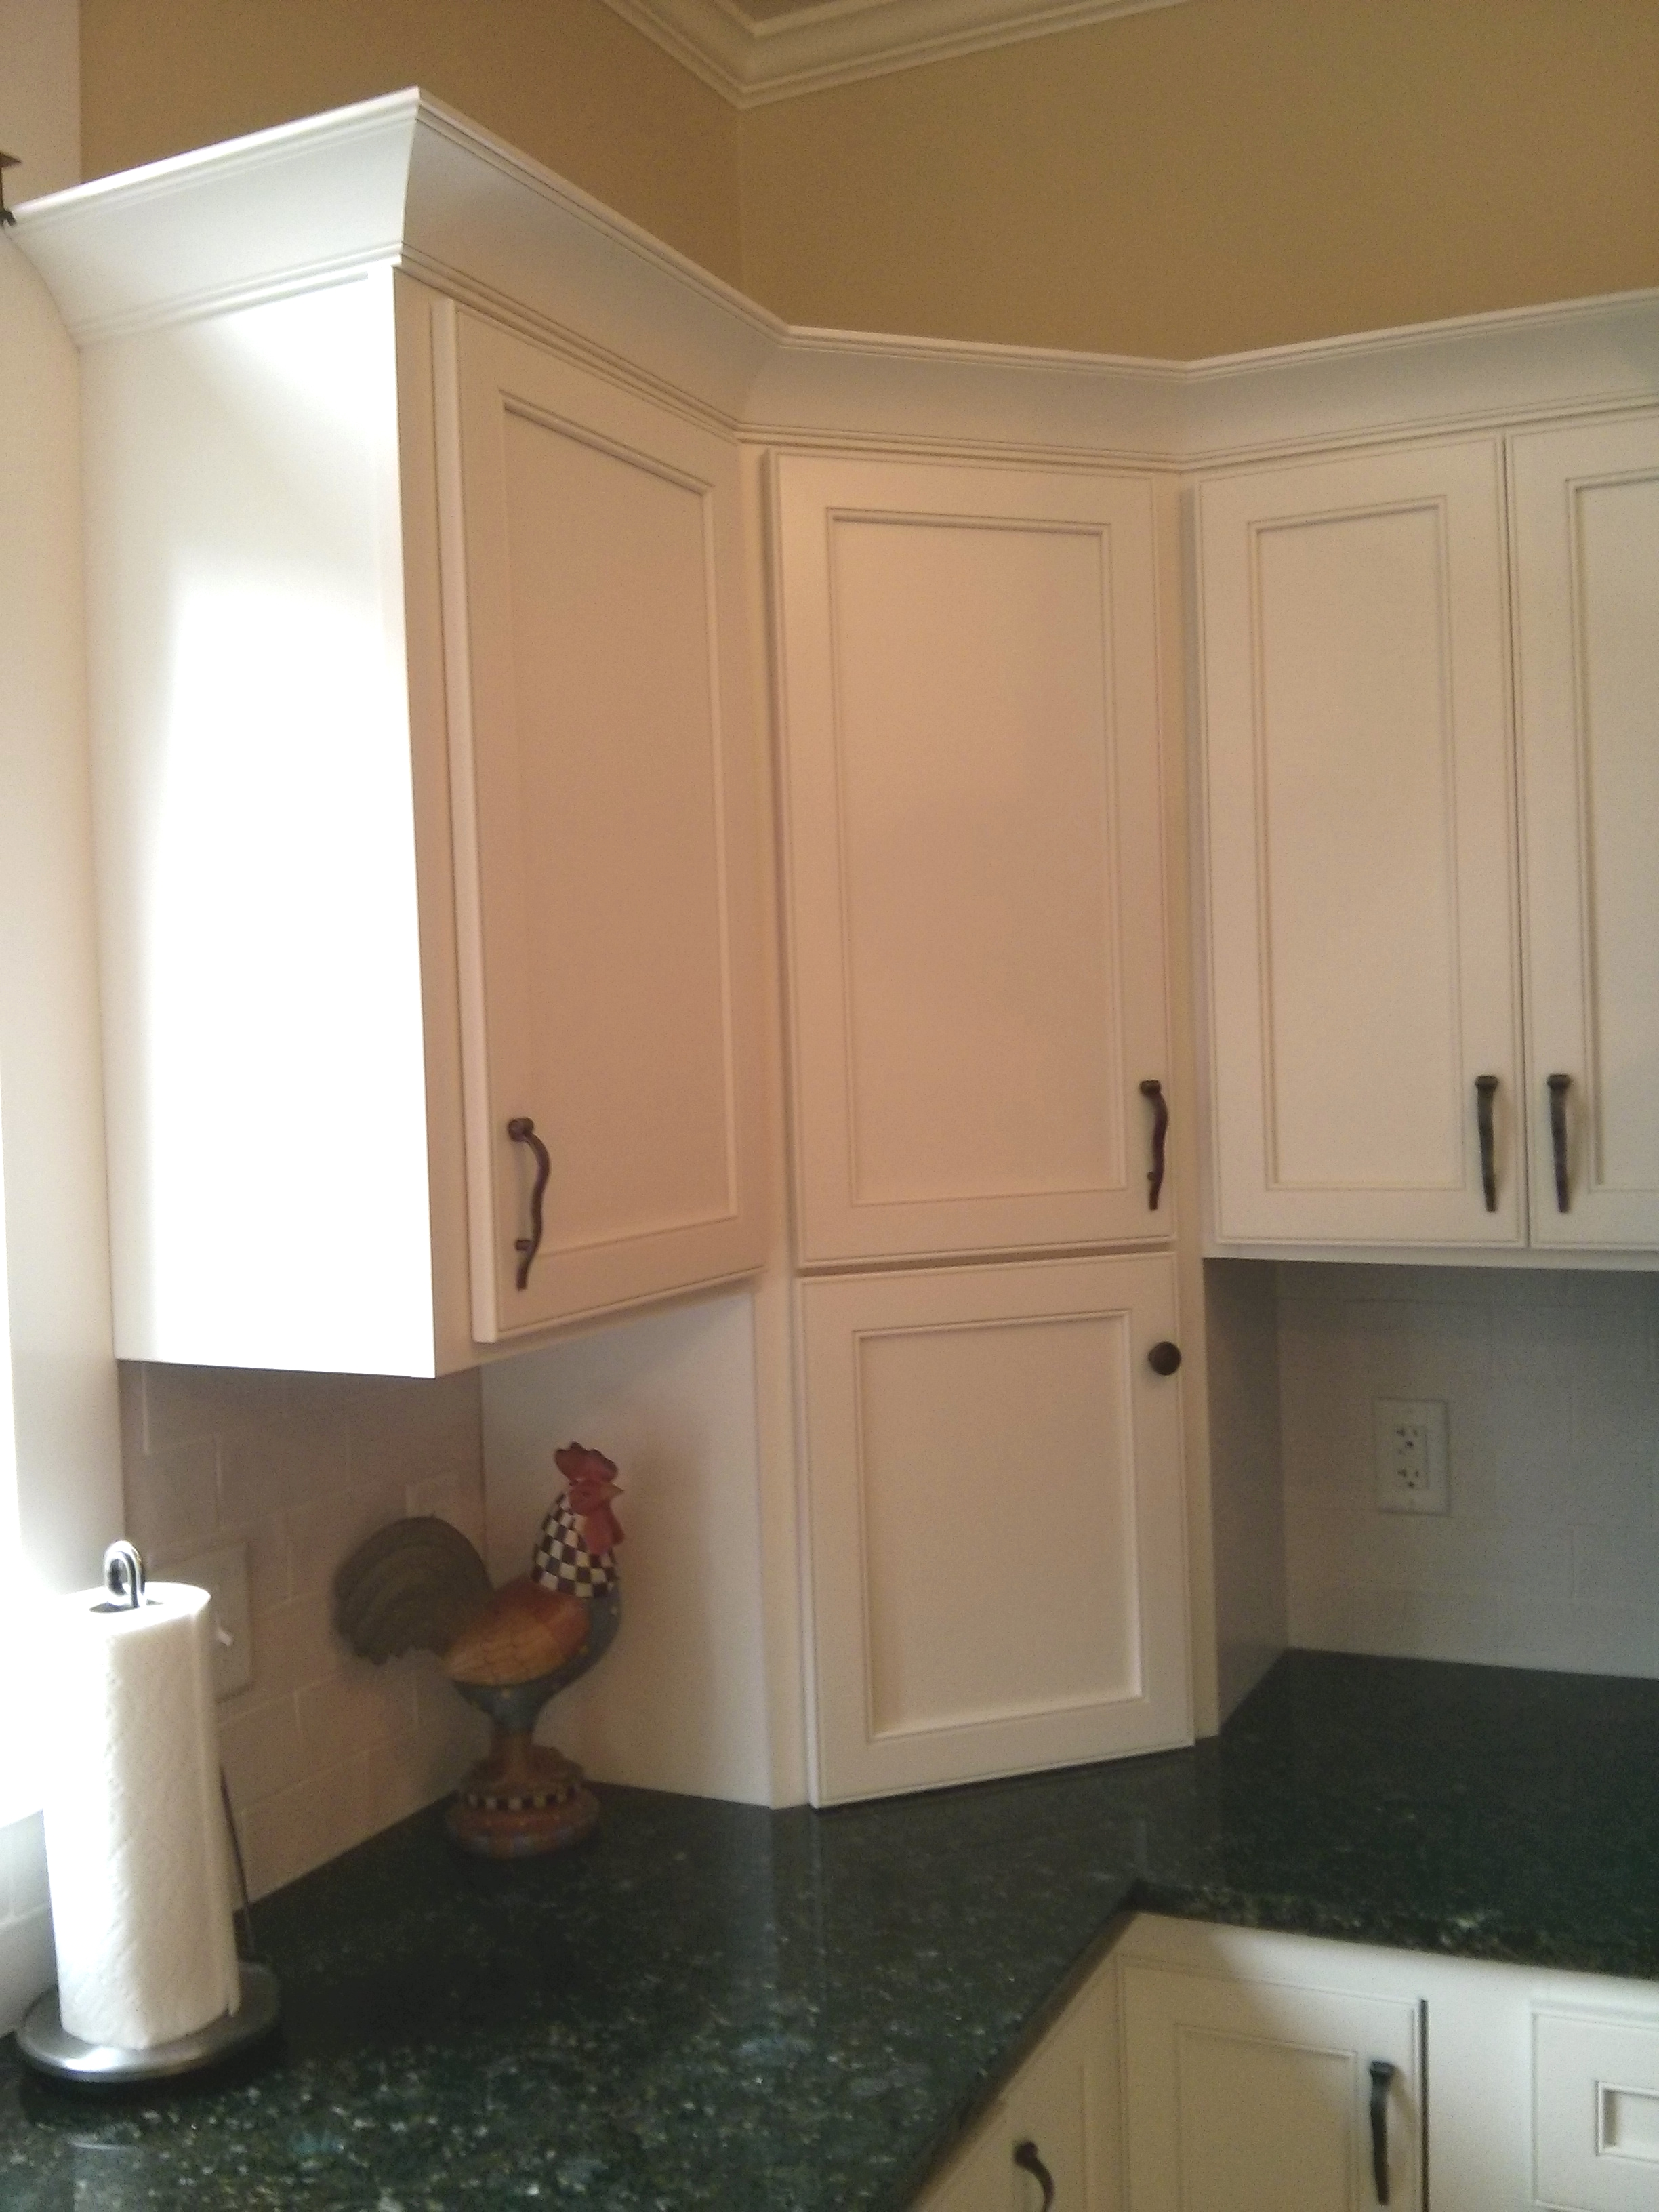 Cabinet refacing in downers grove il kitchen craftsman for Garage door refacing